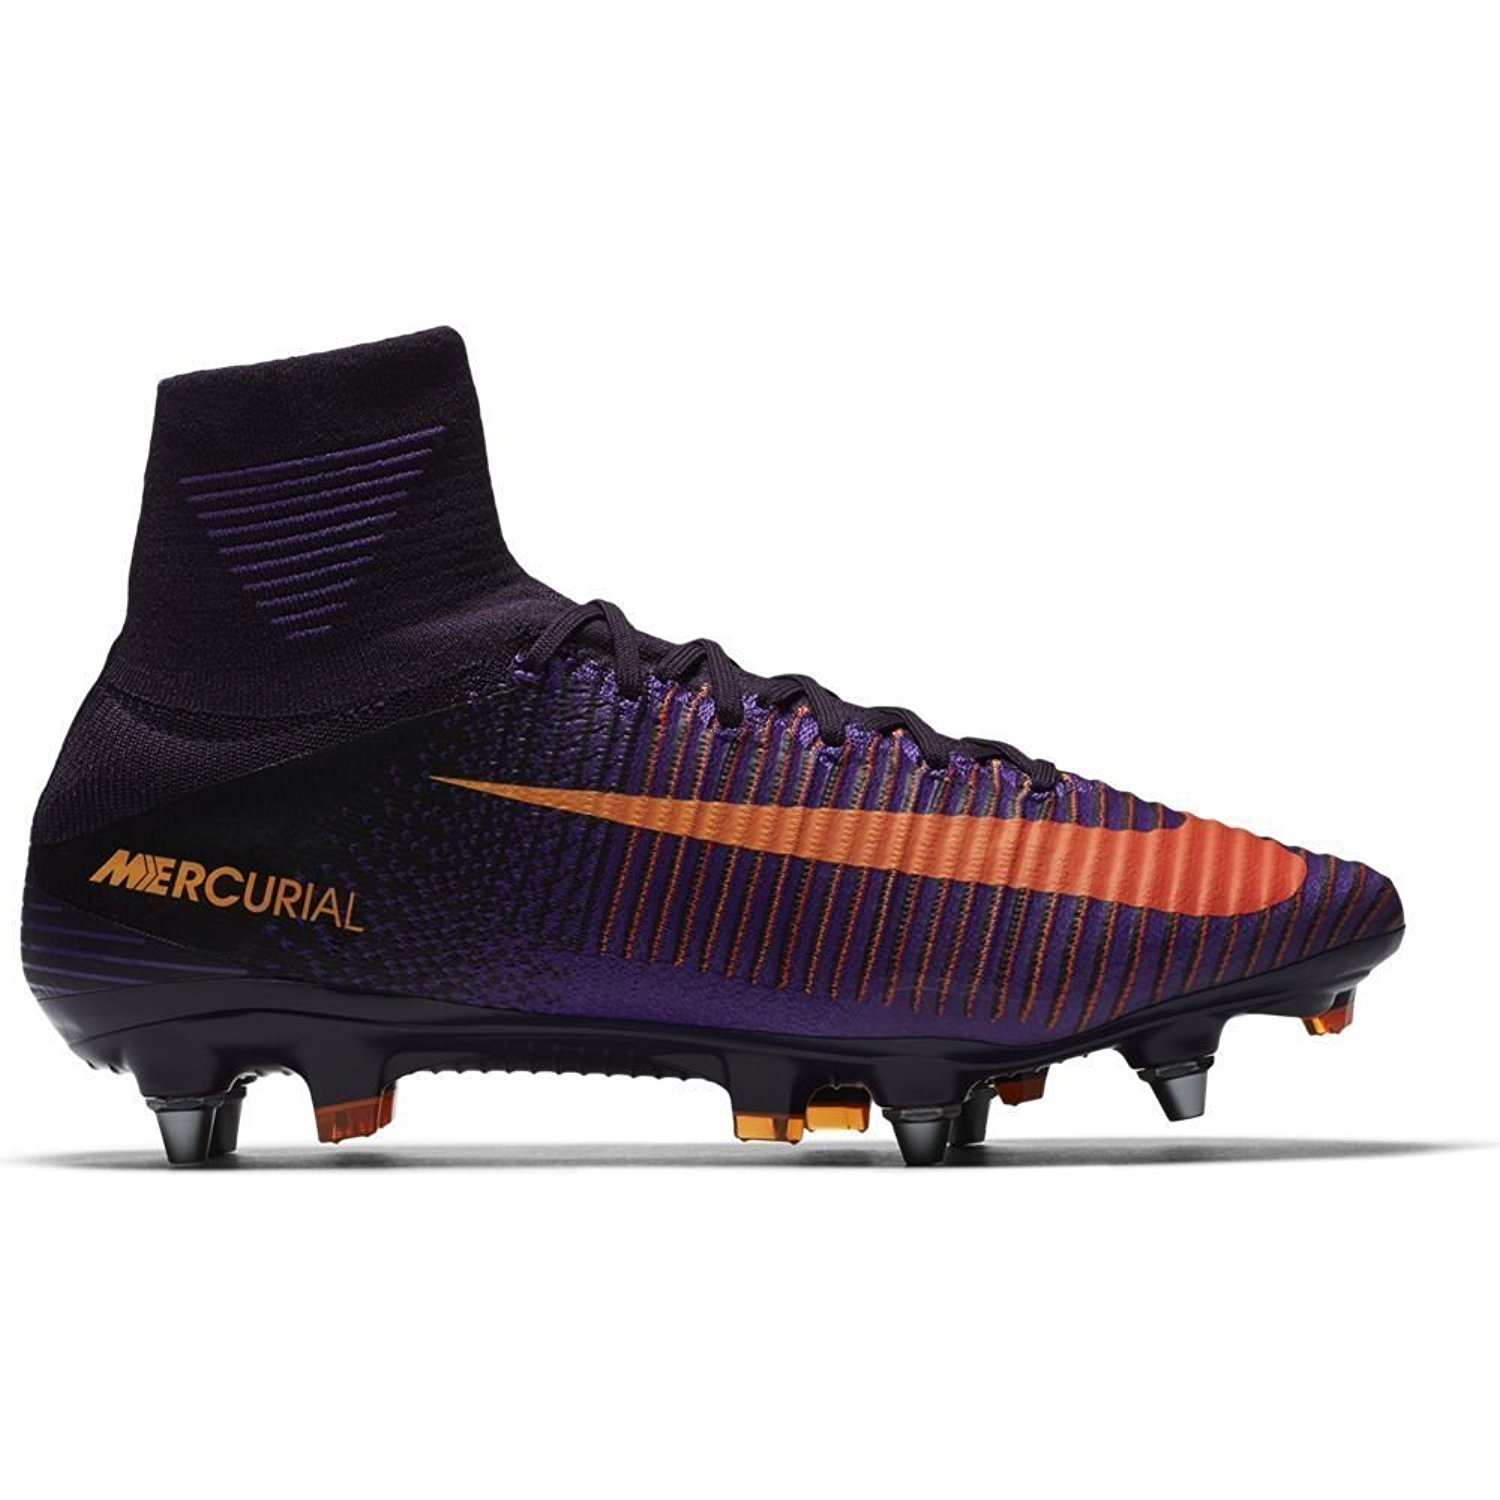 8505836be Get Quotations · NIKE MERCURIAL SUPERFLY V SG-PRO MEN S SOFT-GROUND SOCCER  CLEAT 831956 585 Sz